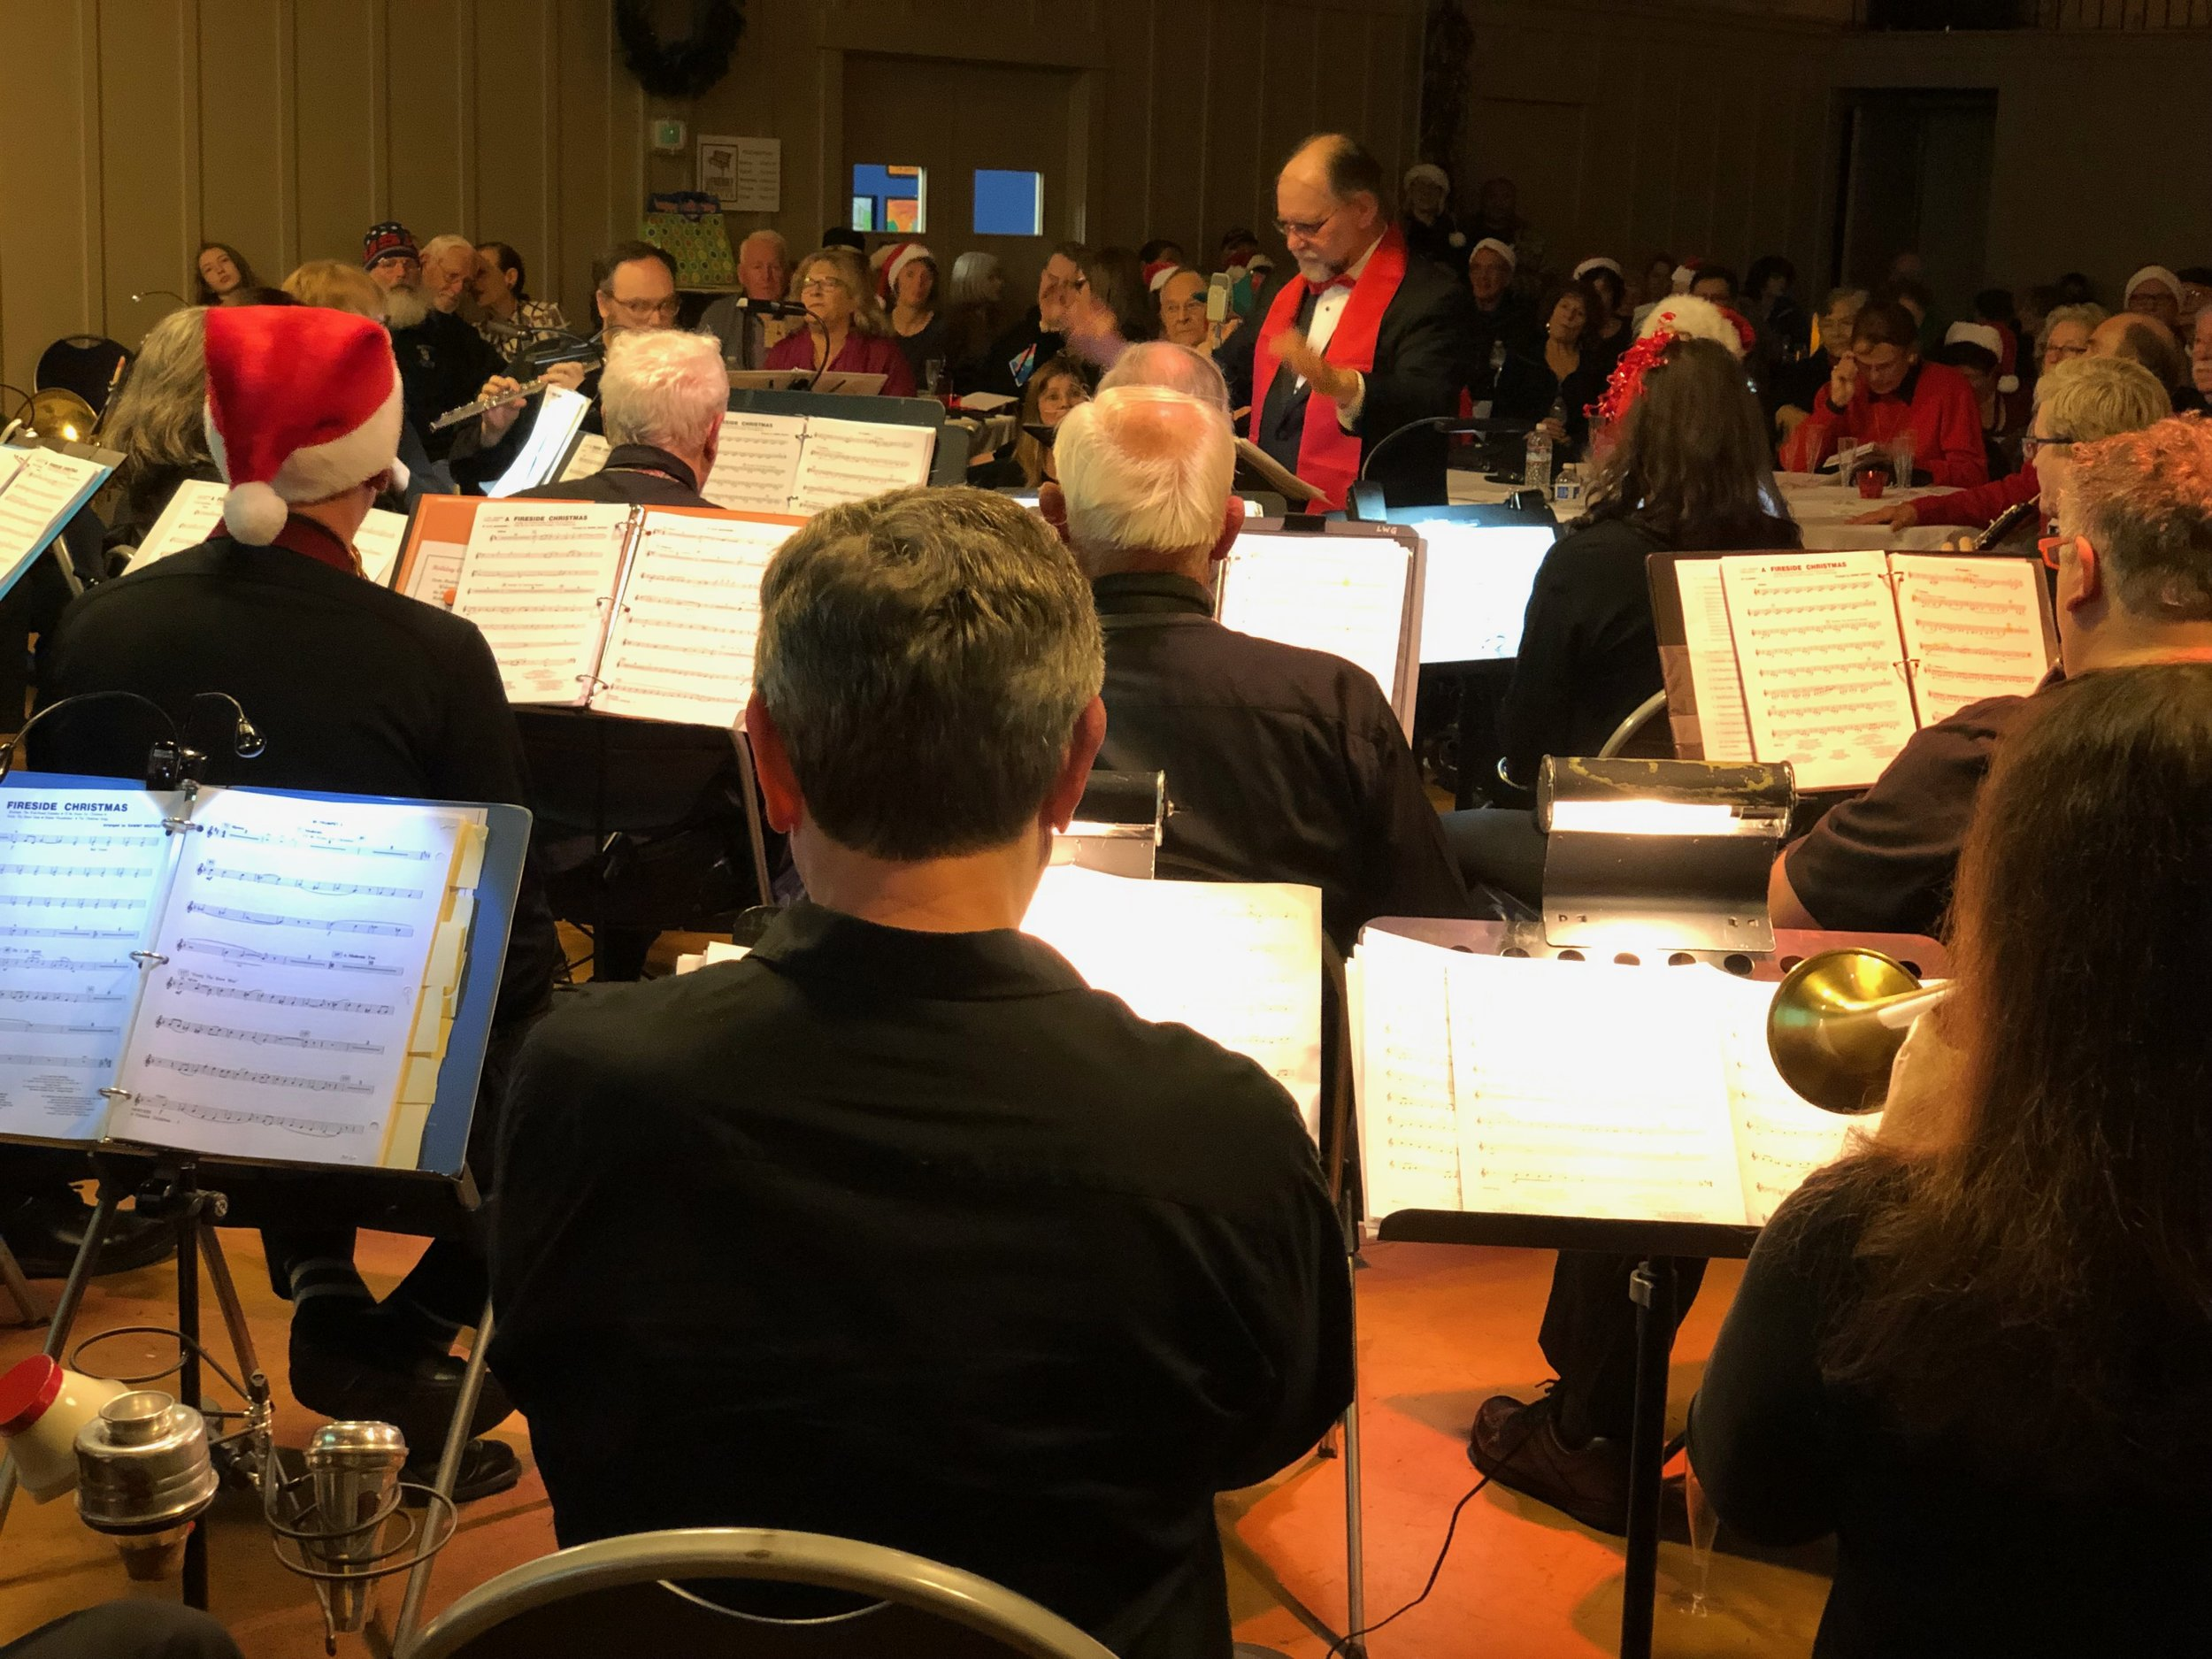 2018 Holiday Concert - The band's annual Holiday Concert left us with standing room only at the Corte Madera Community Center.